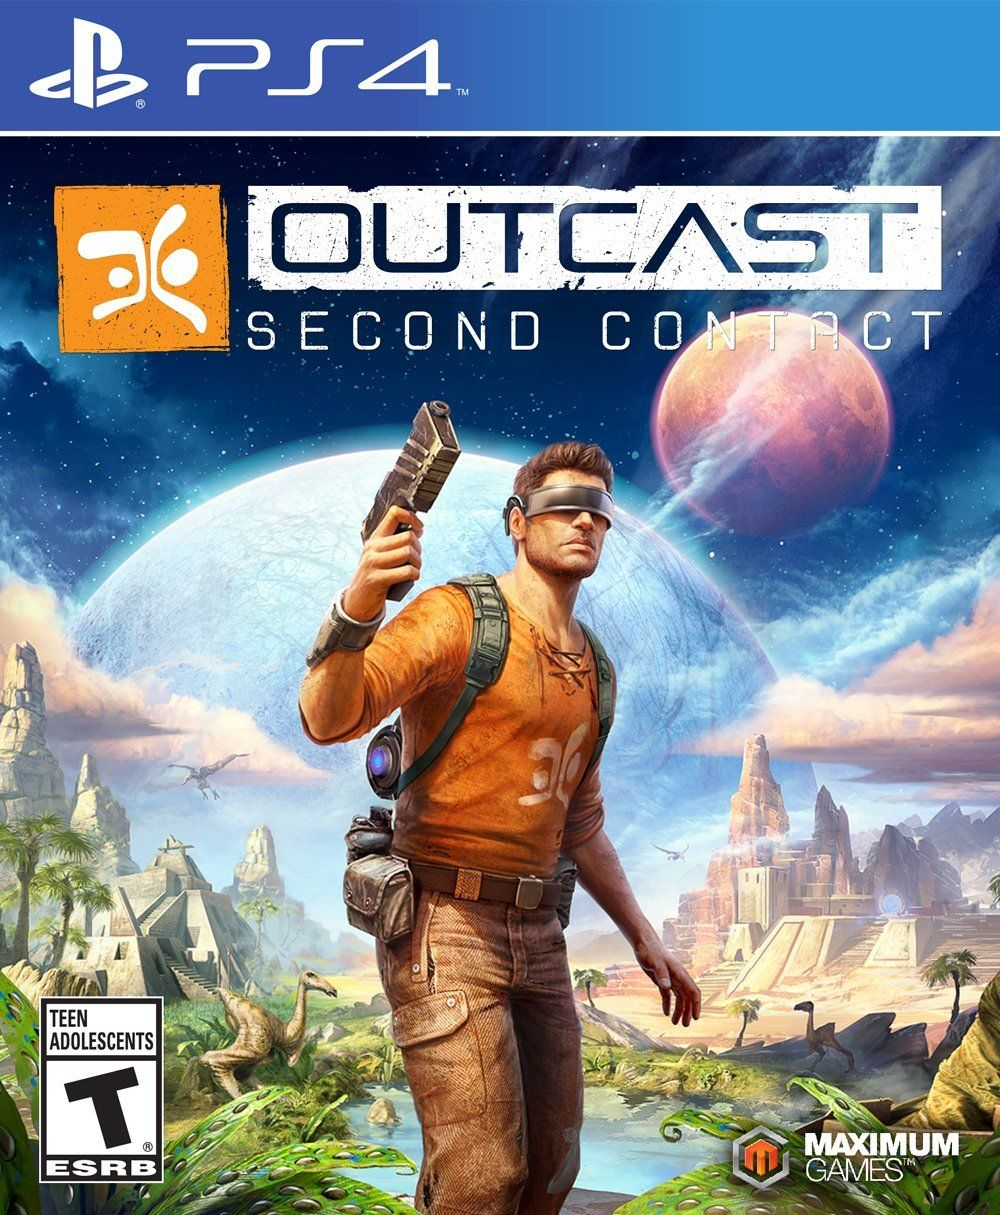 Outcast Second Contact PlayStation 4 Ps4 games, Ps4